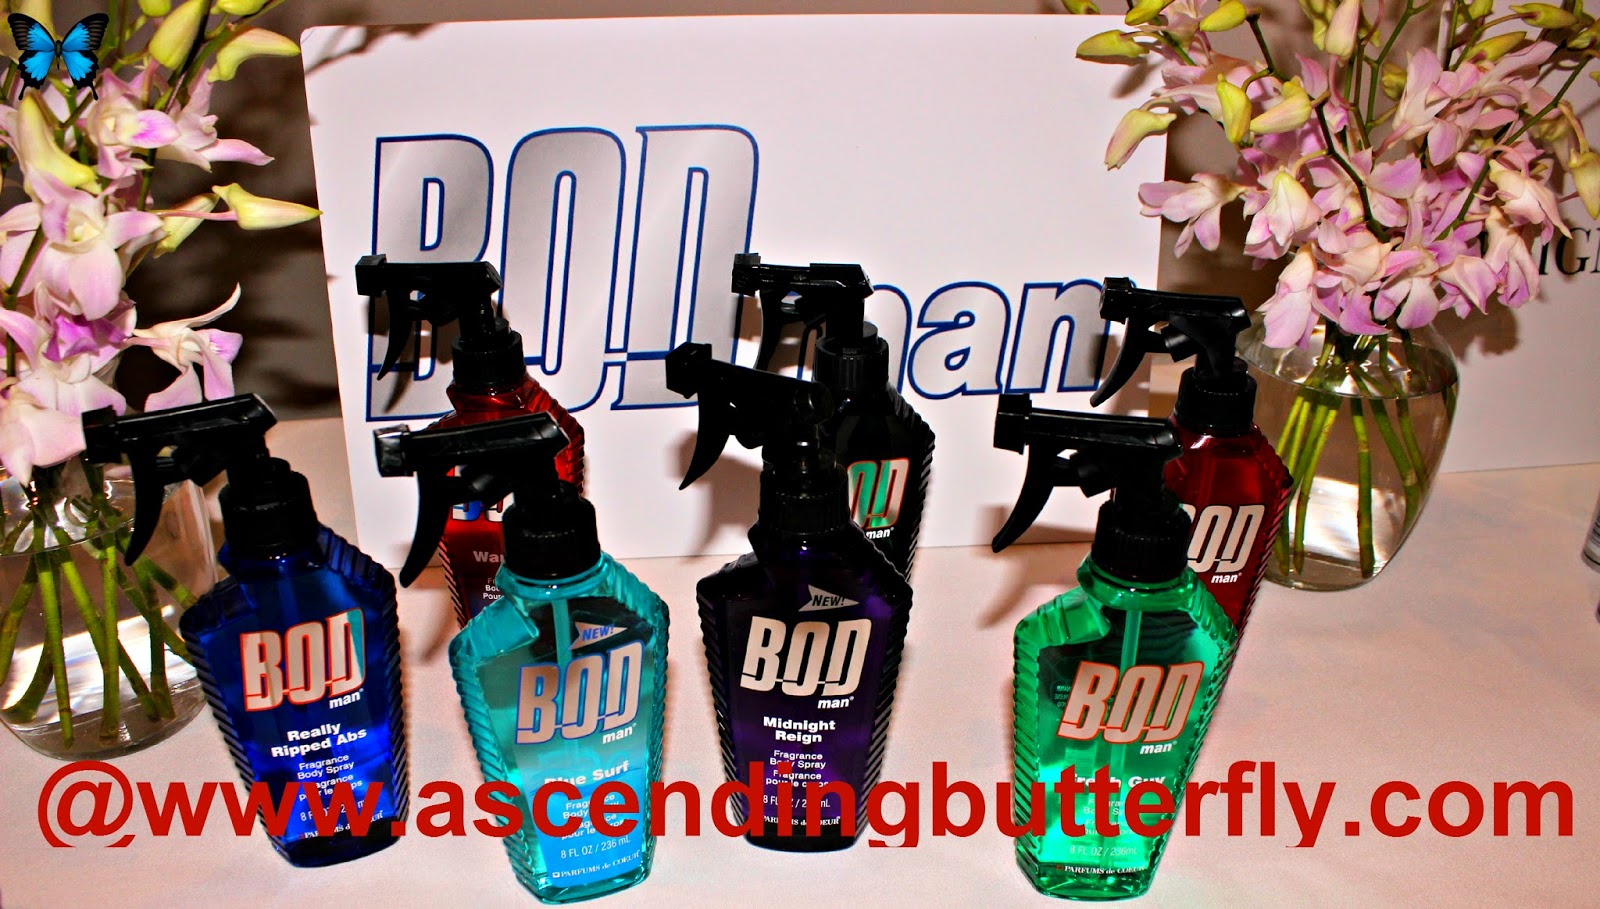 Bod Man at Getting Gorgeous 2014, Fragrance Rebel, parfums de coeur